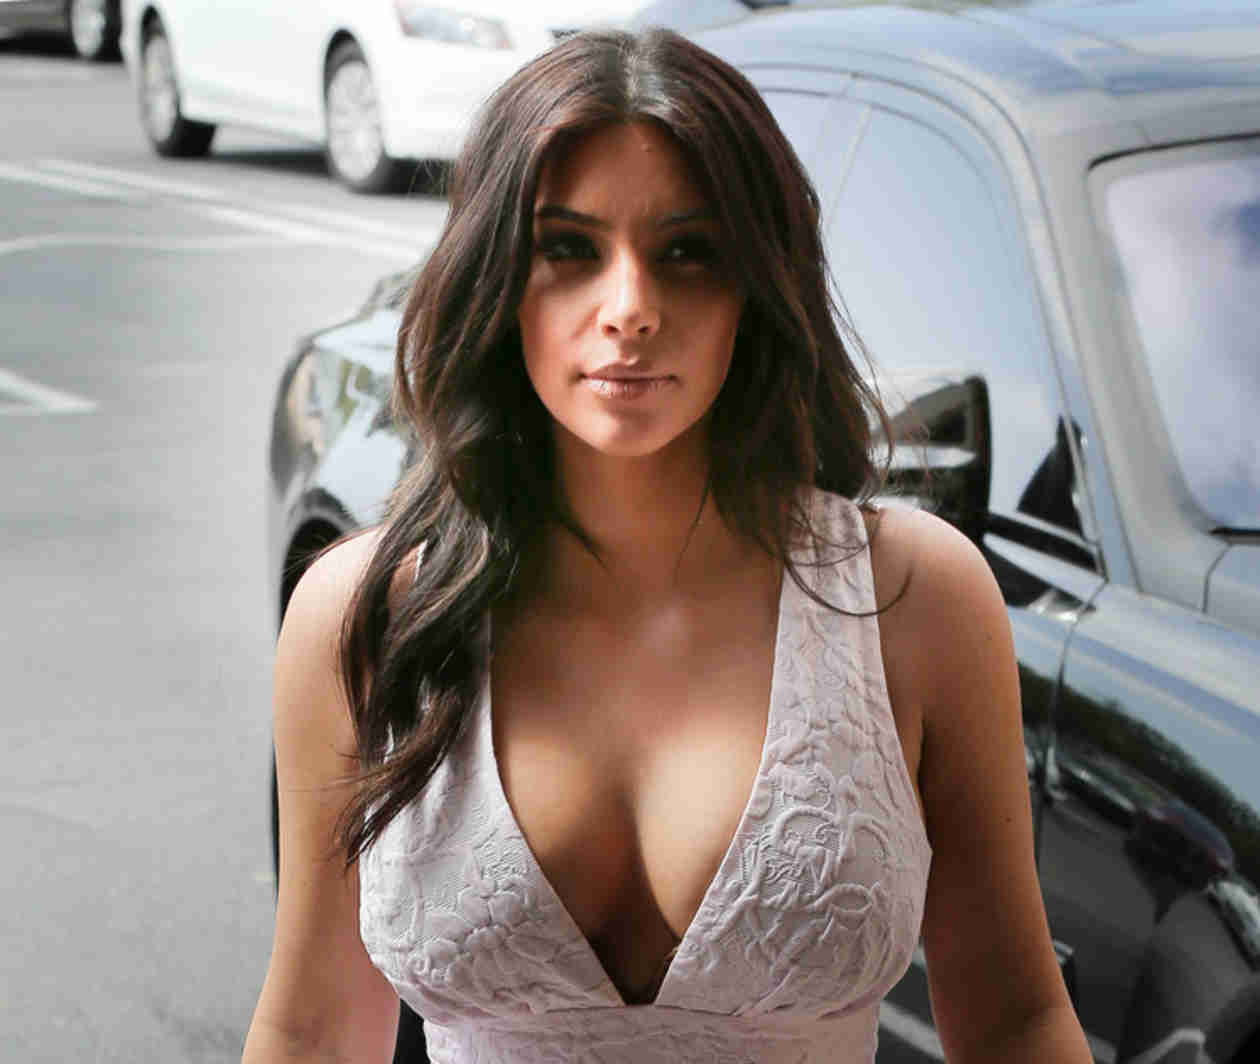 Kim Kardashian Flaunts Crazy Cleavage, Lots of Leg in a Thigh-High Slit Dress